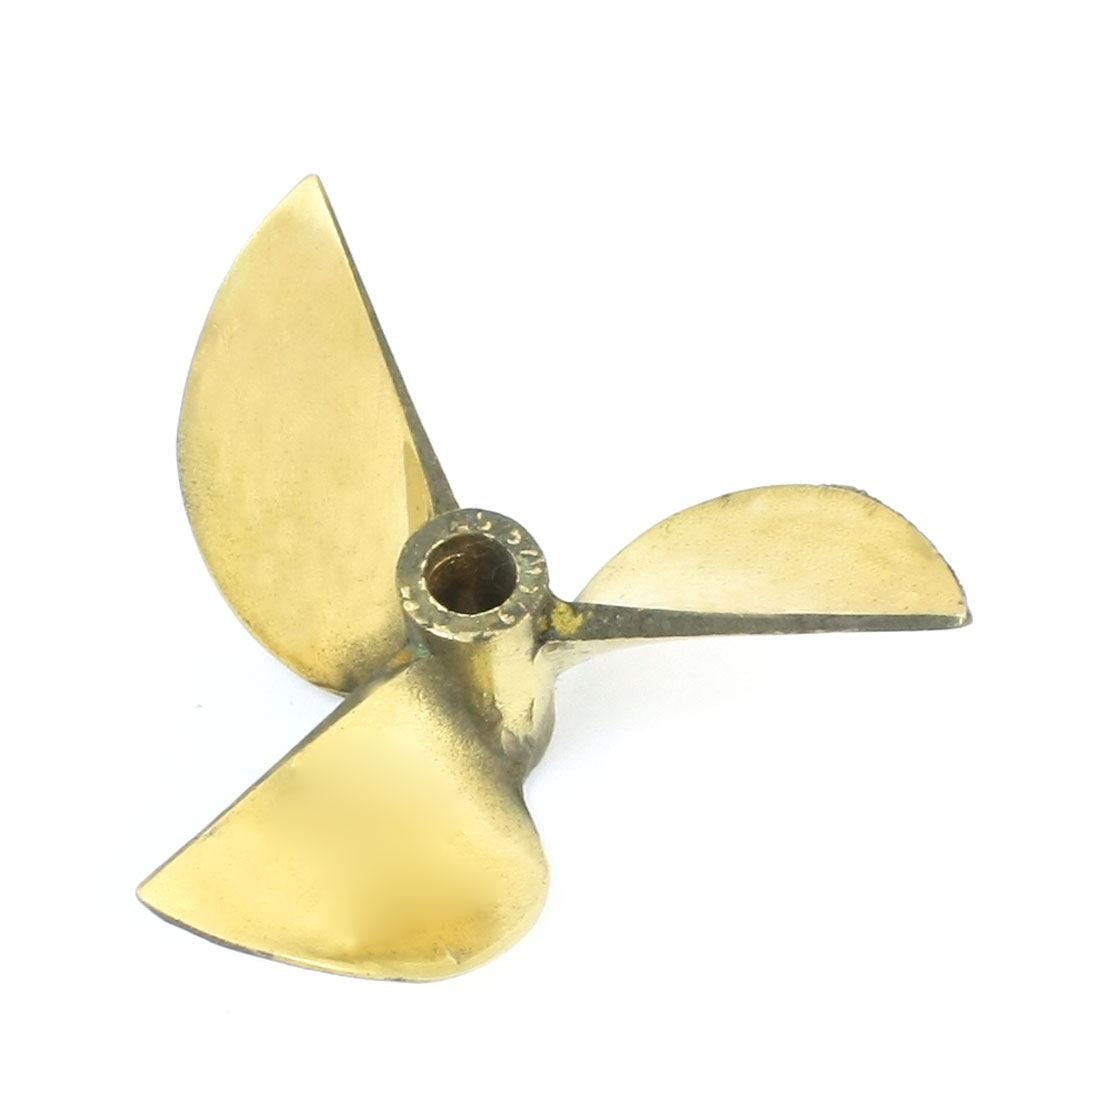 "67mm Dia 1.7"" Pitch Copper Alloy 3 Vanes CW Positive Rotating Propeller Prop for 1/4"" Shaft RC Boat Ship Model"